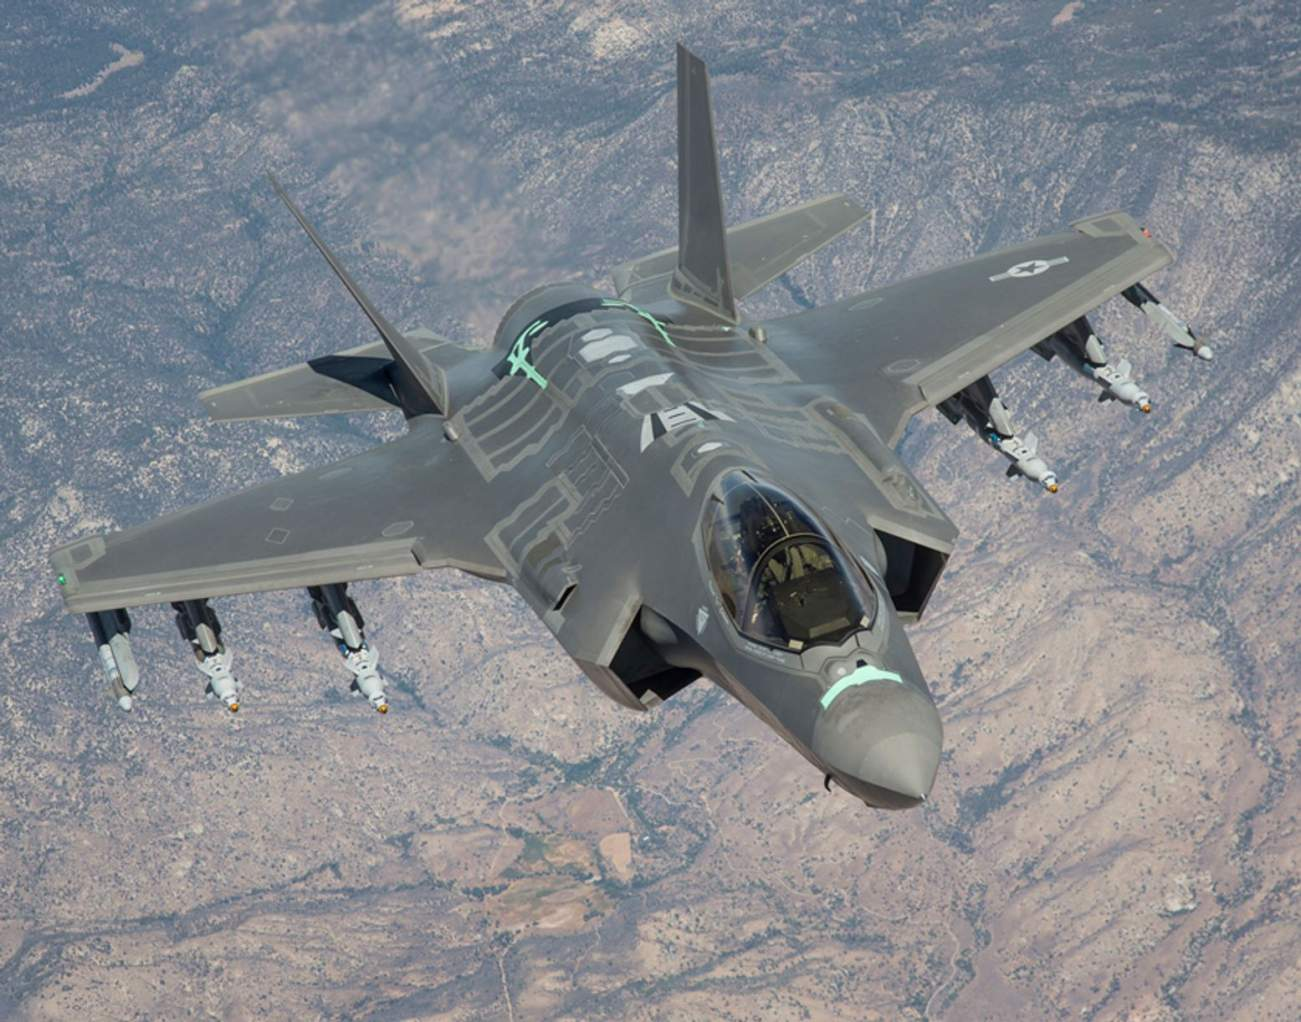 https://www.dvidshub.net/image/4905893/f-35s-begin-auto-gcas-test-flights